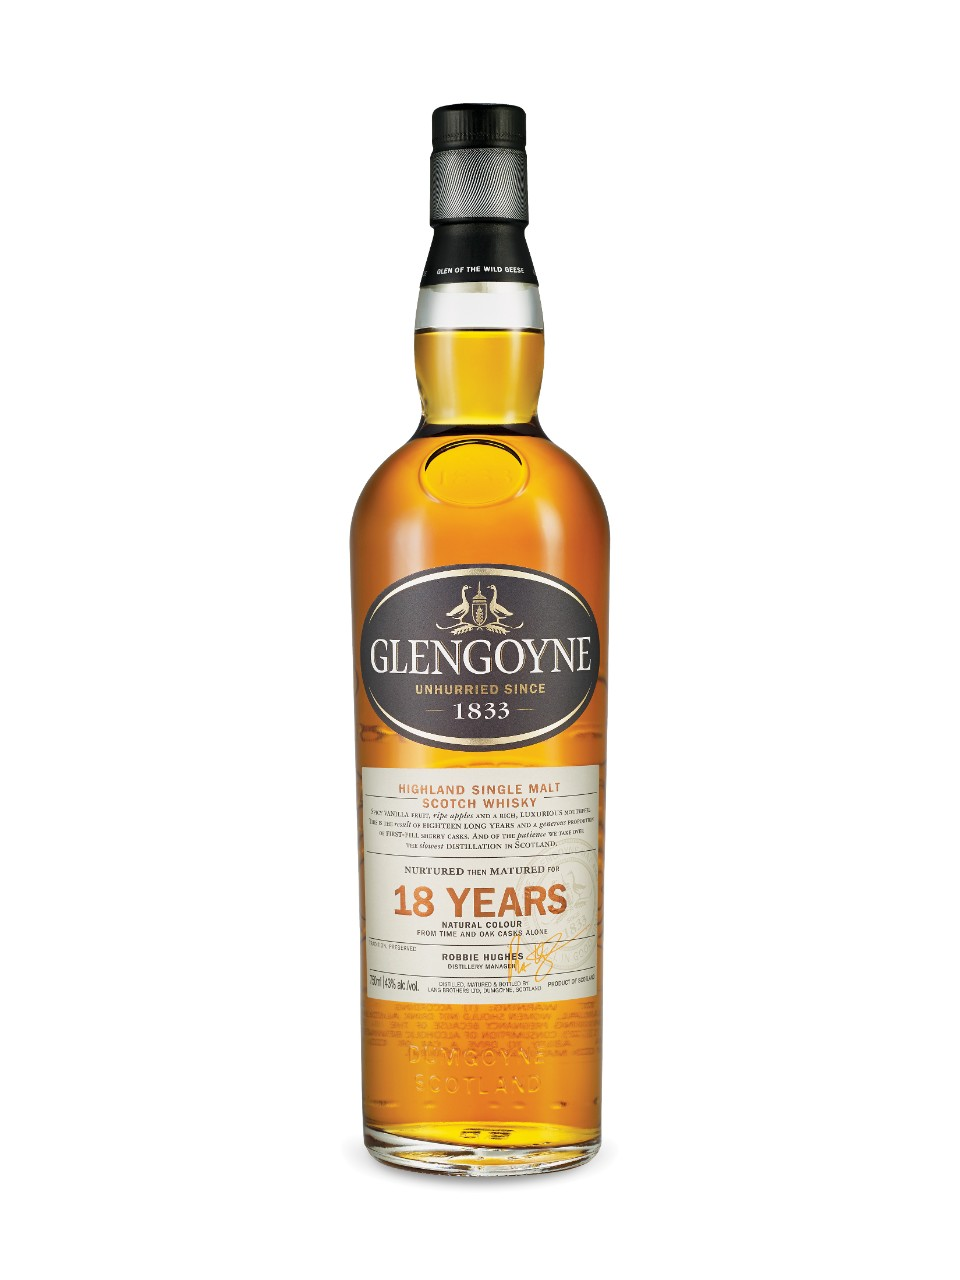 Image for Glengoyne 18 Year Old Highland Single Malt Scotch Whisky from LCBO